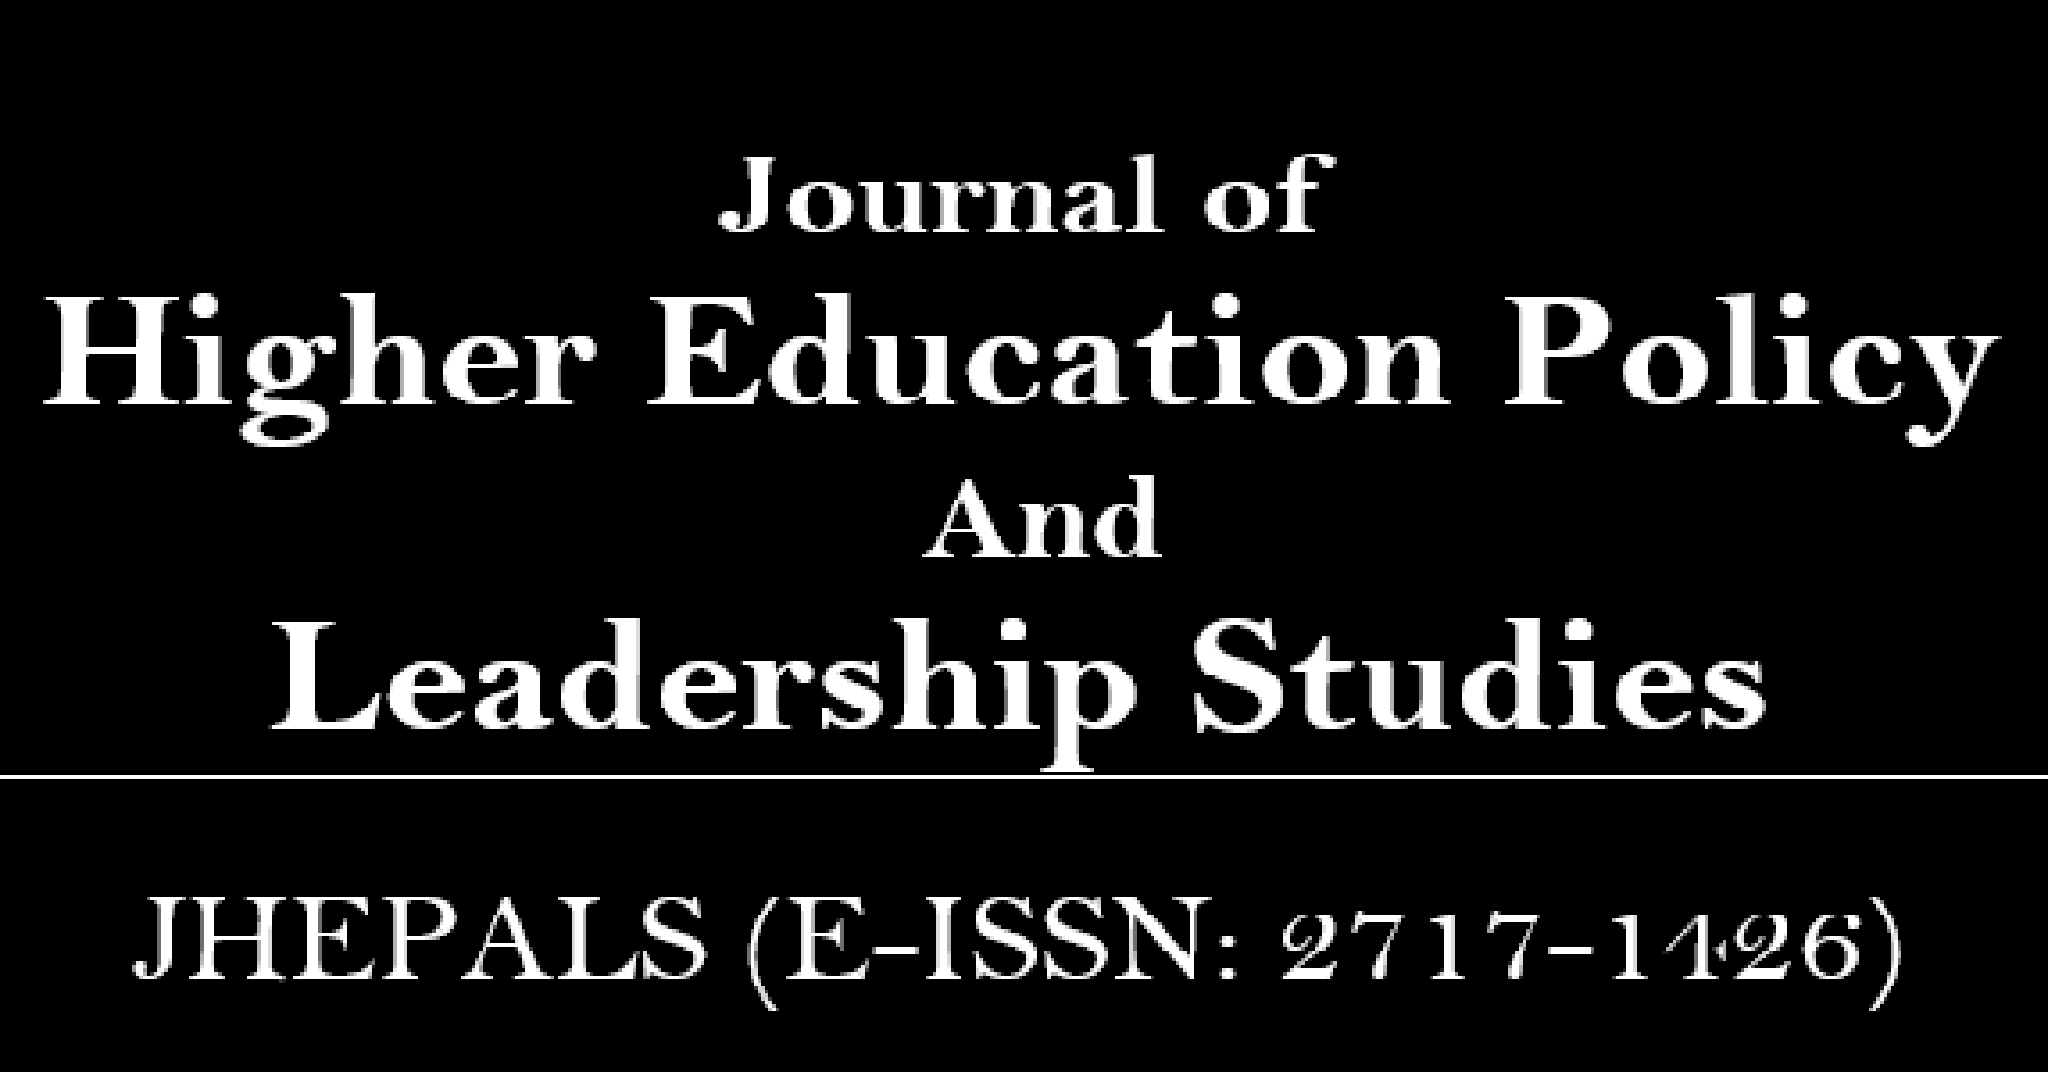 Journal of Higher Education Policy And Leadership Studies